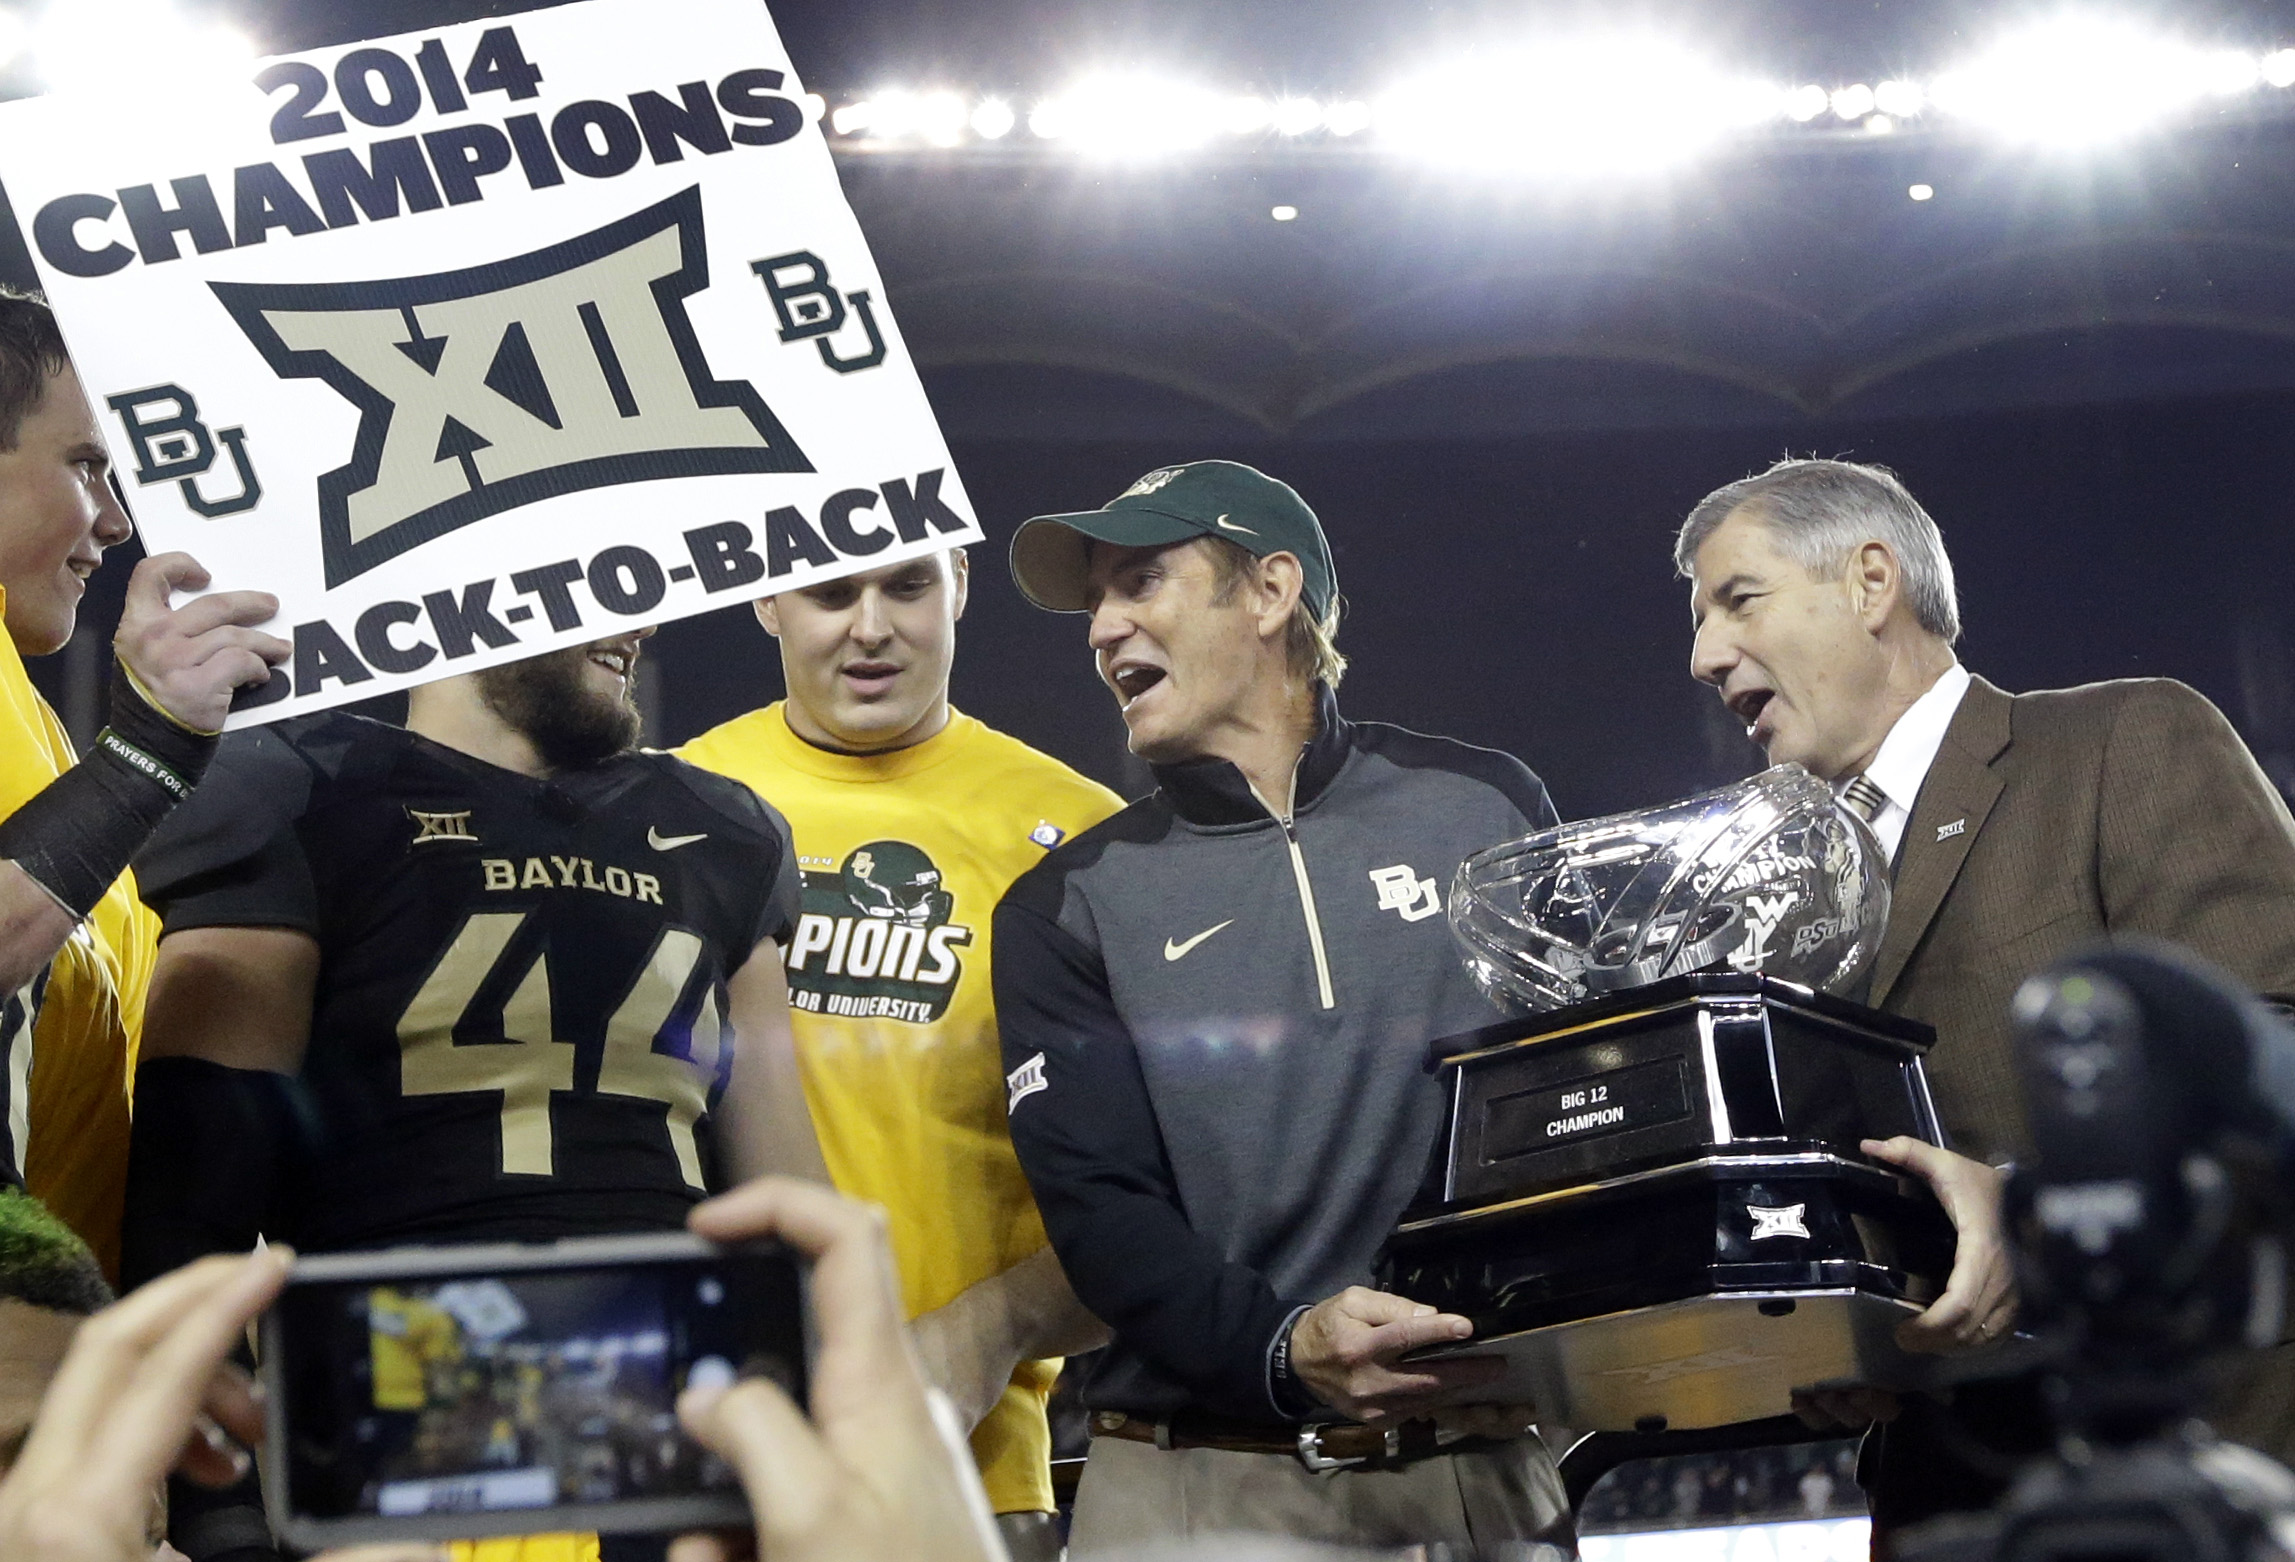 Big 12 Commissioner Bob Bowlsby, right, presents Baylor head coach Art Briles, center, with the conference trophy after their 38-27 win over Kansas State in an NCAA college football game, Saturday, Dec. 6, 2014, in Waco, Texas. (AP Photo/Tony Gutierrez)